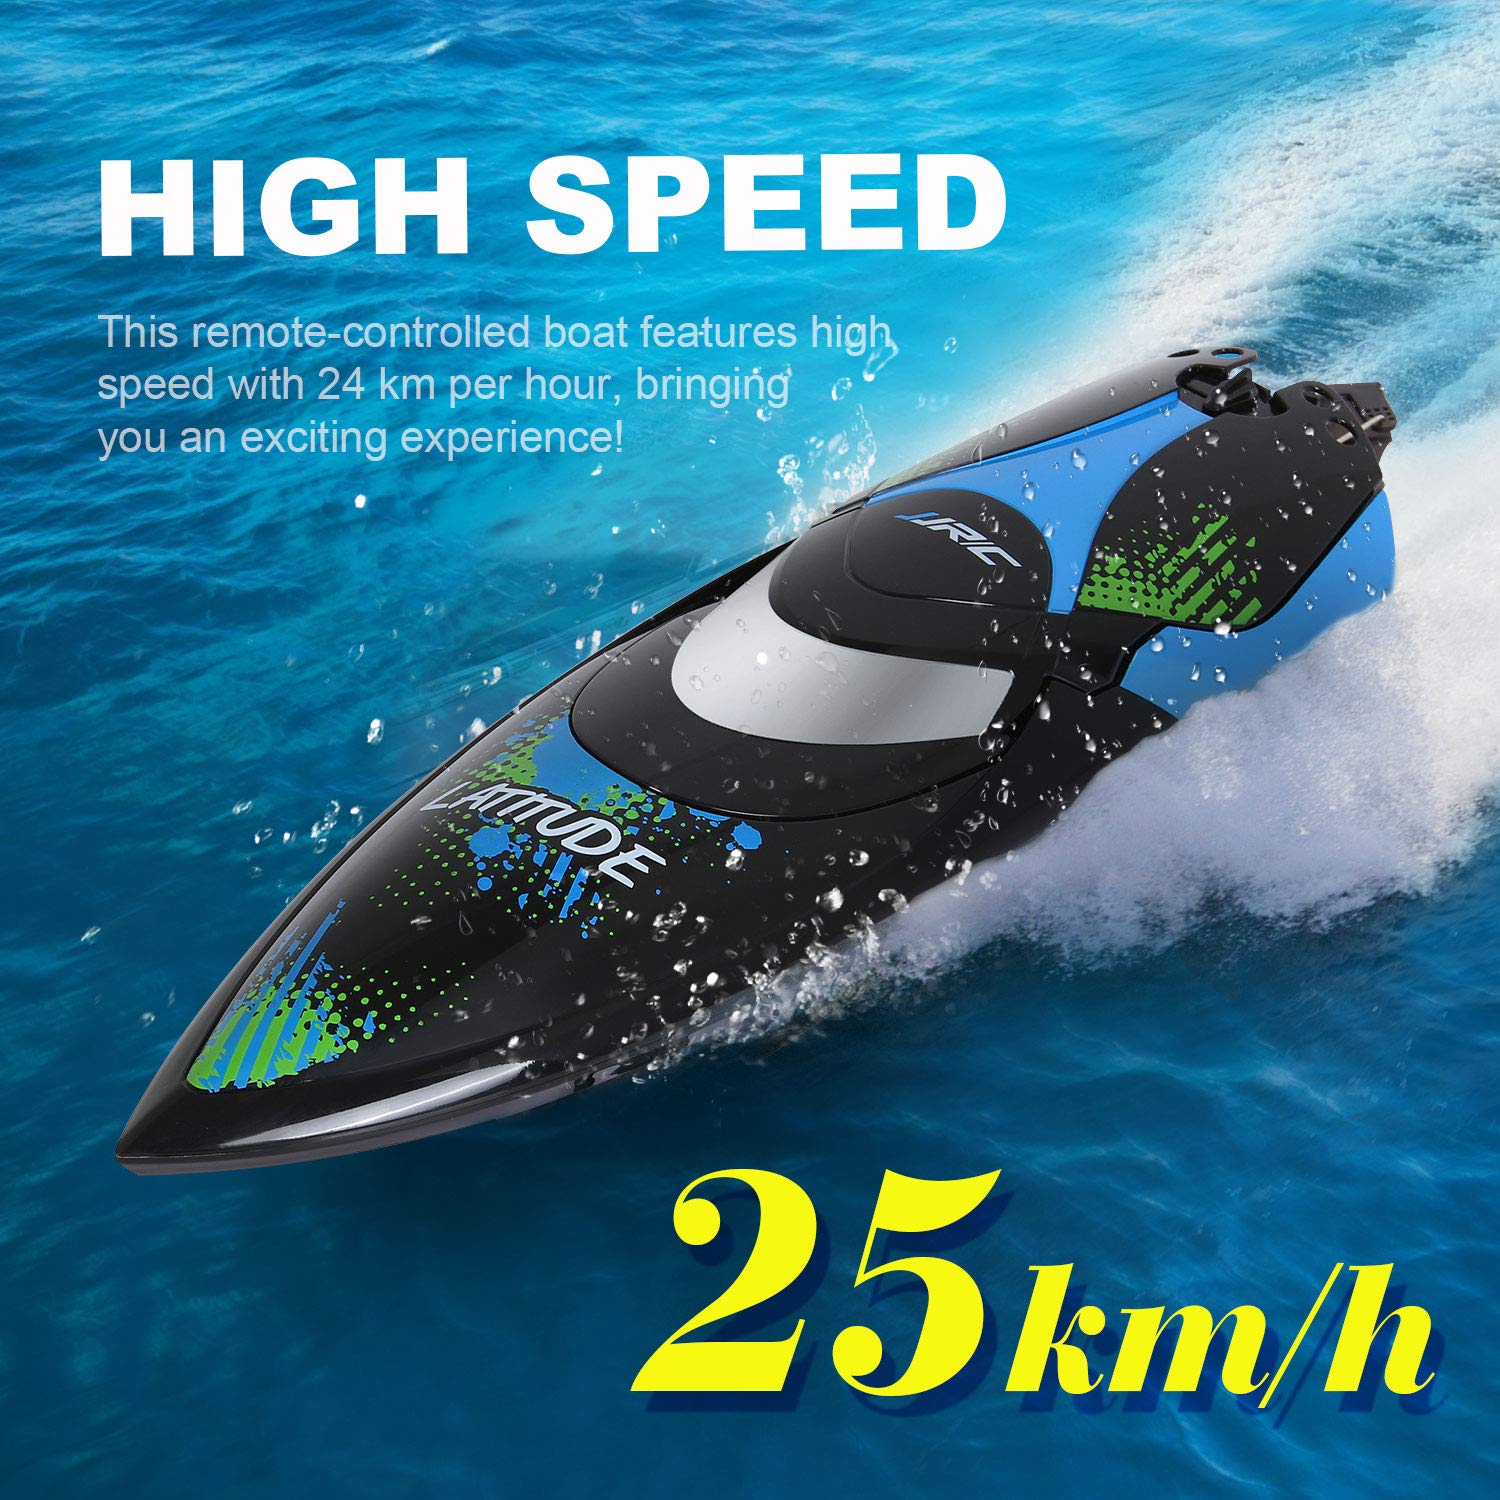 ANTAPRCIS 25km/h RC Boat, 2.4GHz 180° Flip Remote Control Race Boat for Pool Lake Boy Adult, Black by ANTAPRCIS (Image #2)